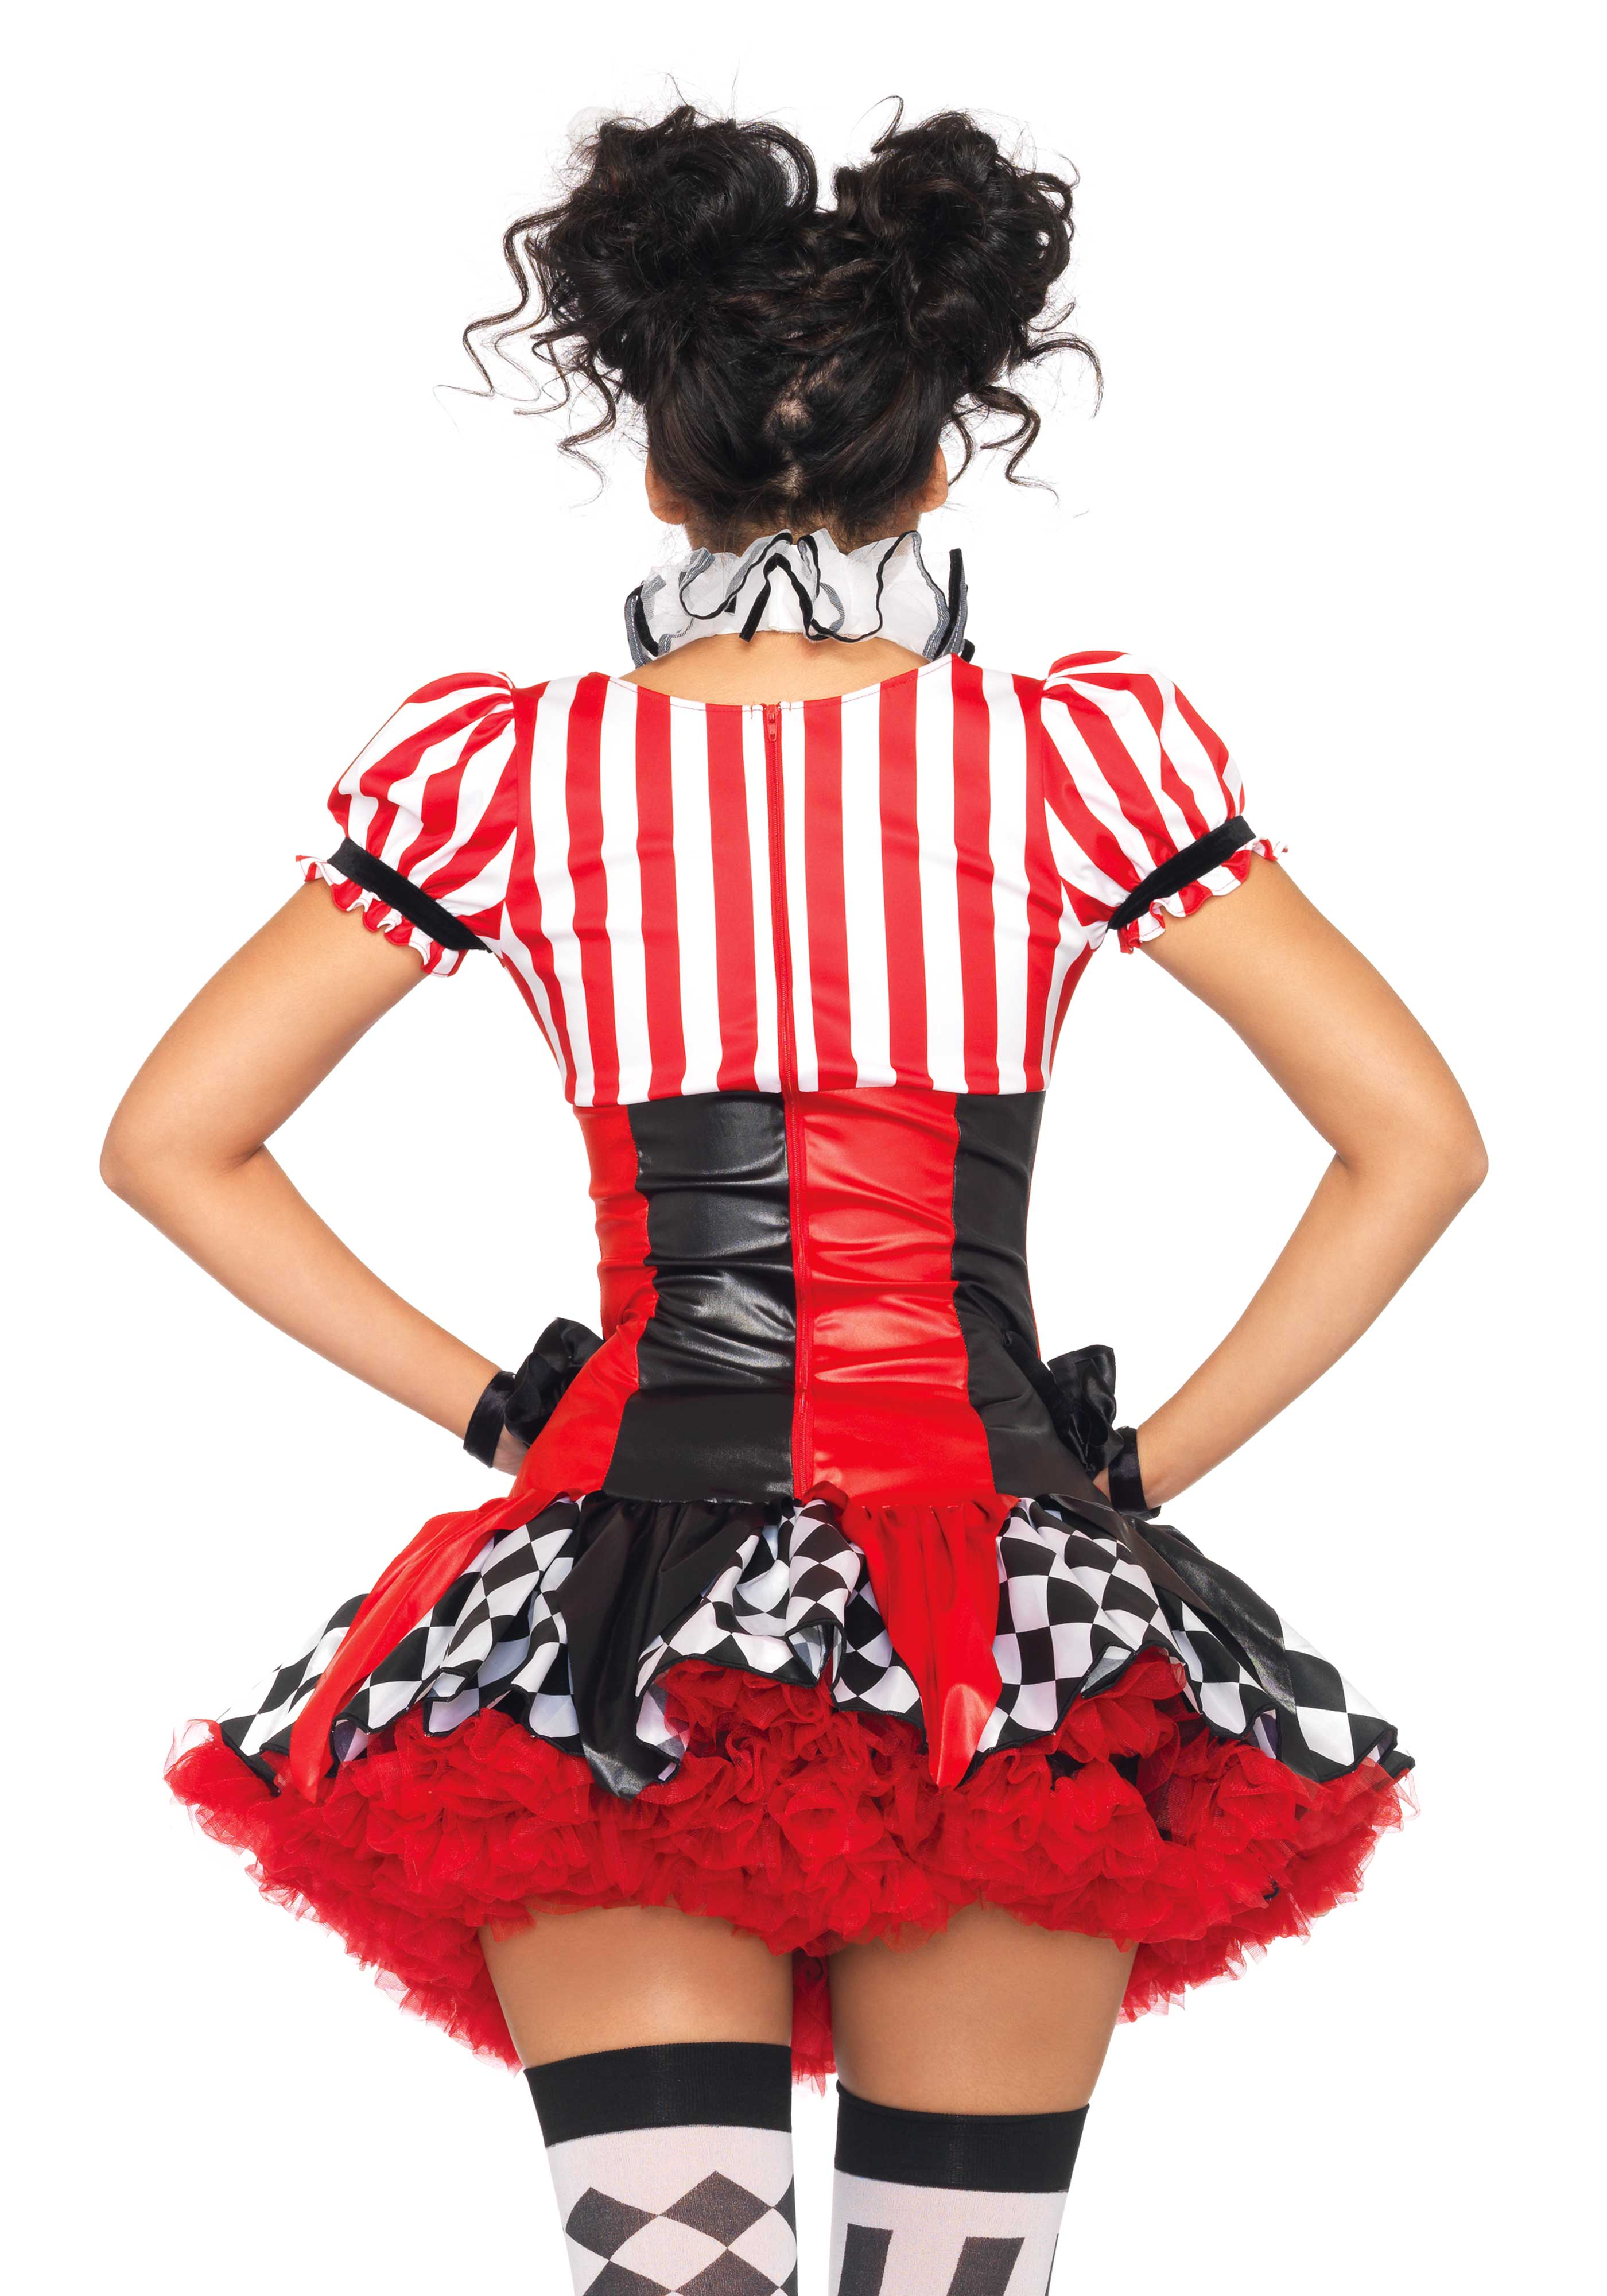 3Pc. Harlequin Clown Costume Set With Suspender Dress Ruffle Neck Piece ...  sc 1 st  Leg Avenue & 3Pc. Harlequin Clown Costume Set With Suspender Dress Ruffle Neck ...